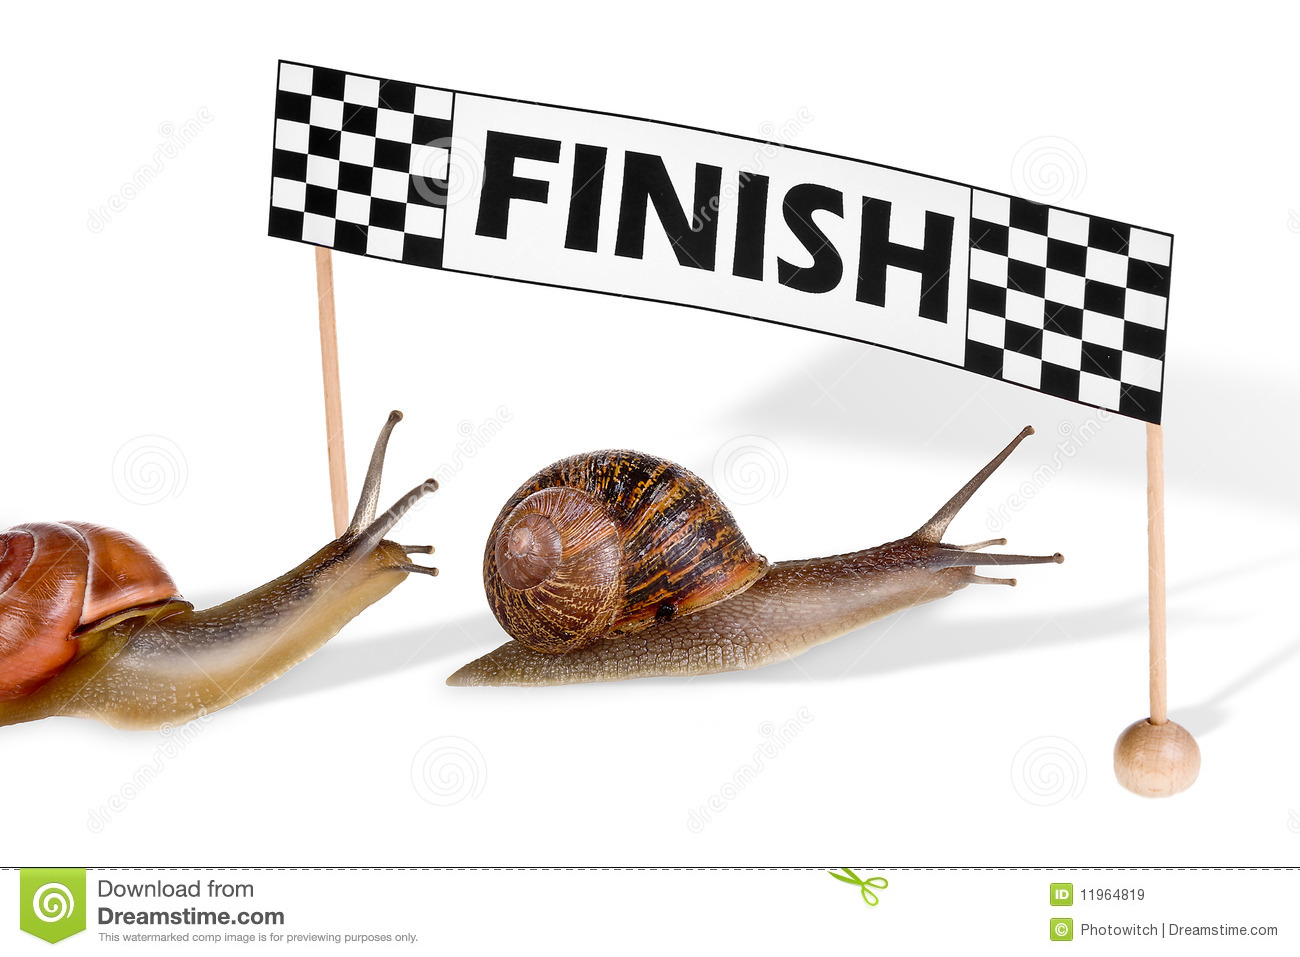 Racing Snails Royalty Free Stock Images - Image: 11964819